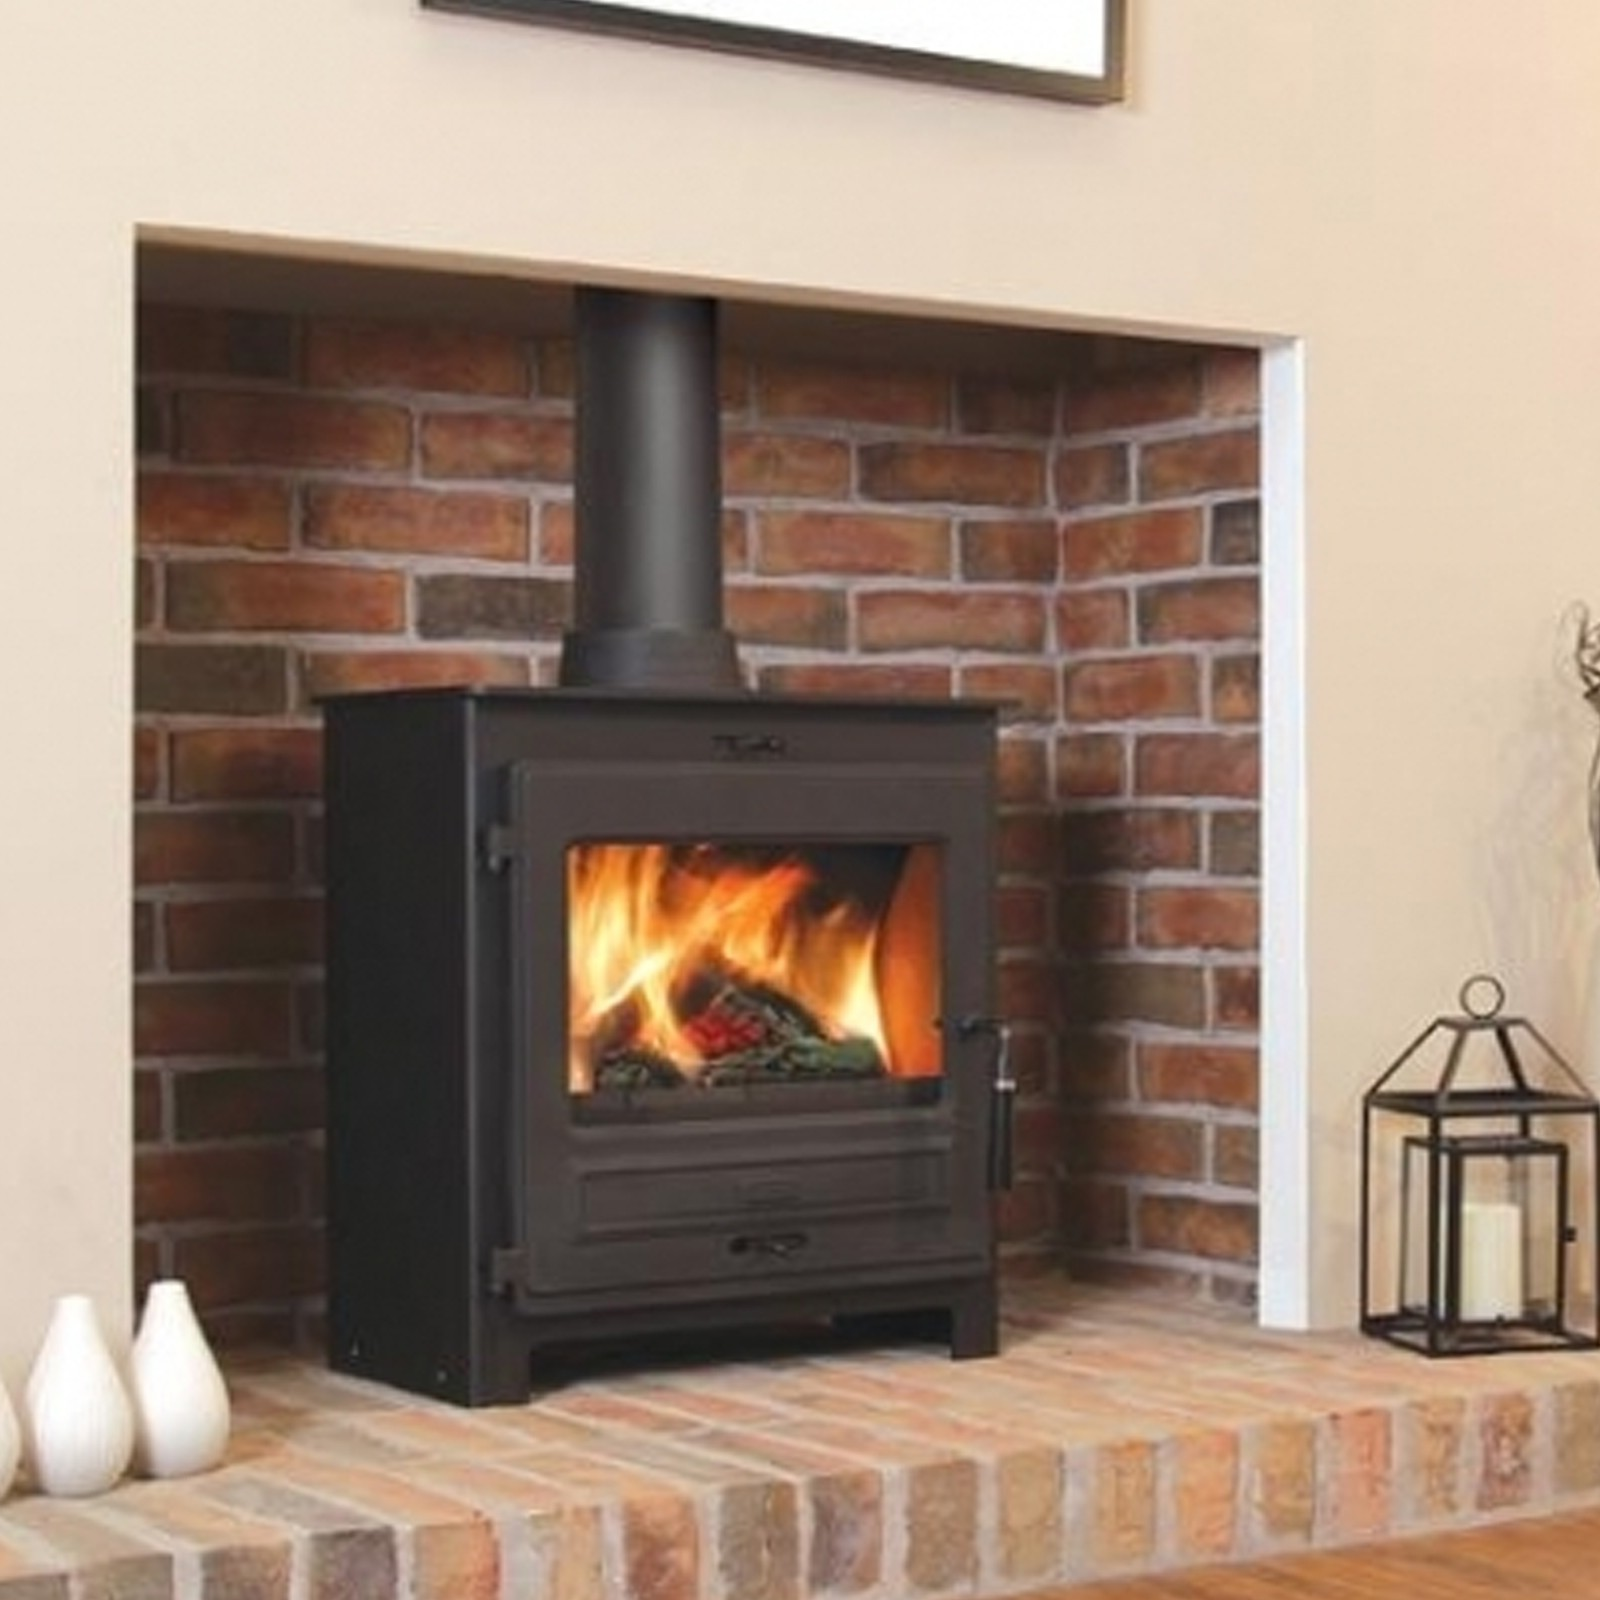 Best prices around flavel no 1 multifuel stove speedy delivery